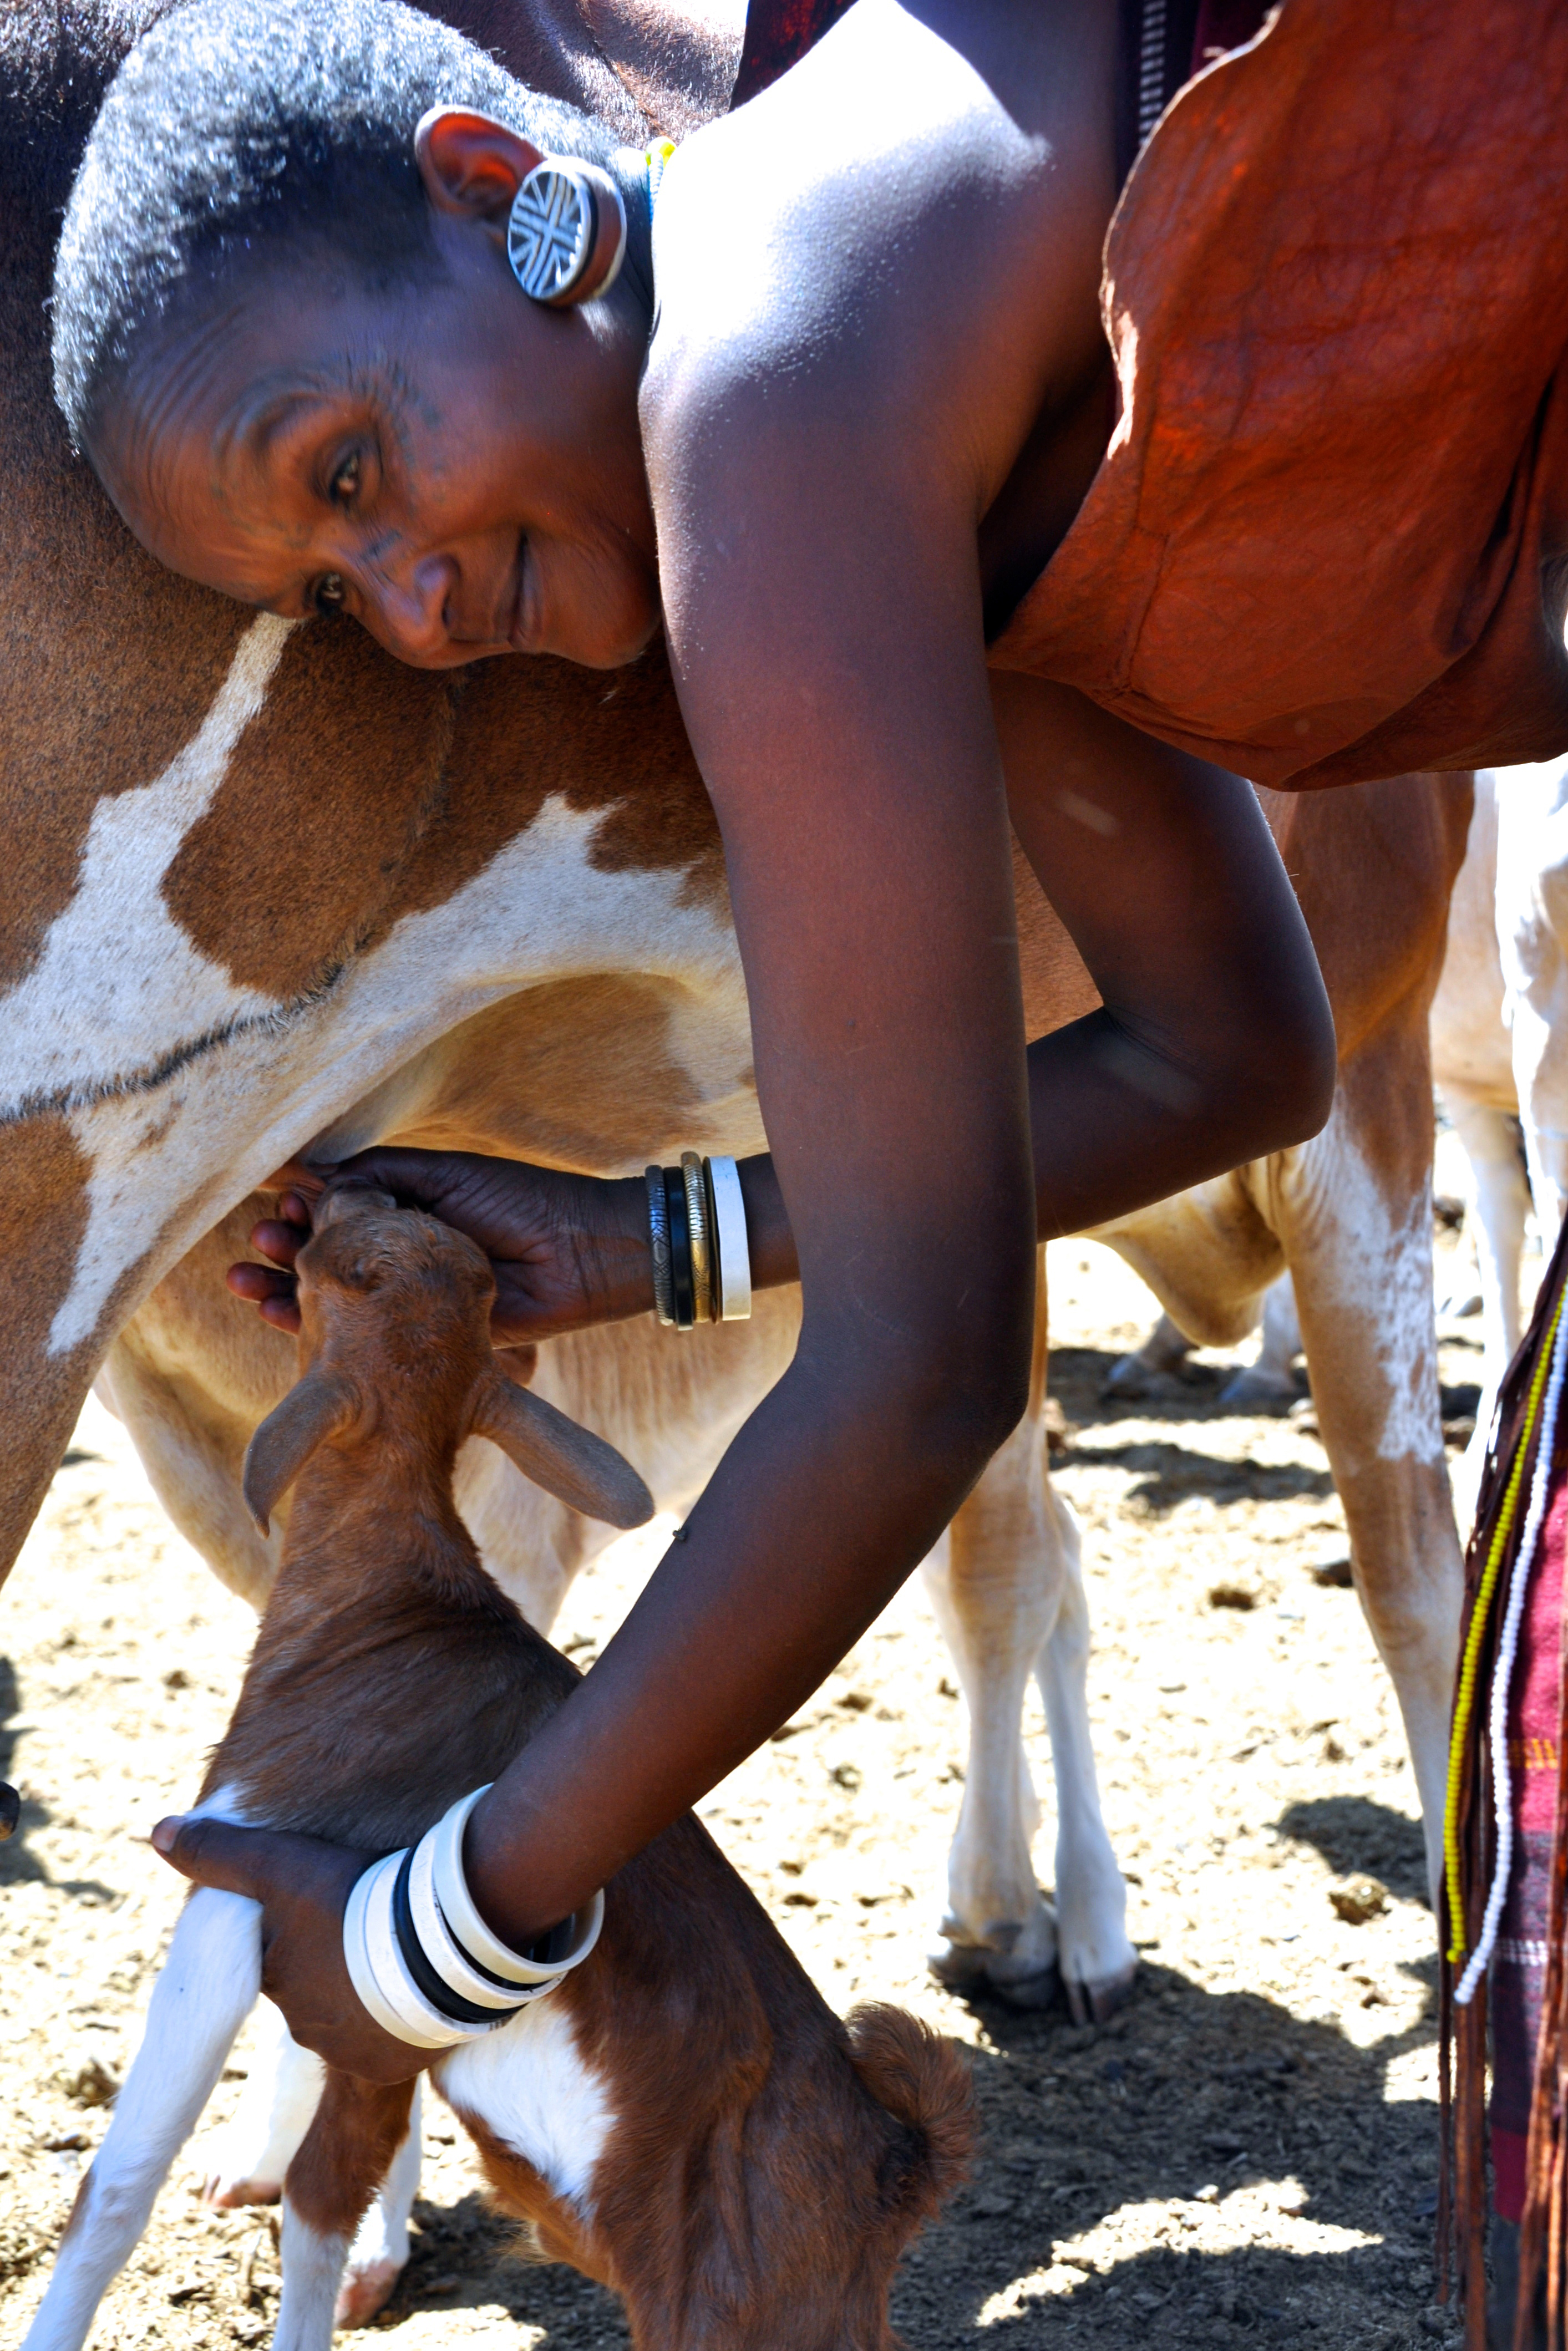 The first place winner of the 2015 Ag Abroad Photo Contest. Entry description: This photo of a Datoga woman was taken near Lake Eyasi in Tanzania, as she milked one of her family's cows and allowed a baby goat to nurse from the cow. The woman pictured is one of five sister wives who are the main caretakers of the family's large herd of cattle and goats. The women of the family will labor many hours a day to milk, feed and water the herd. The Datoga are a pastoralist tribe that place a high value on cattle for their livelihood and as a symbol of status. Every part of the cow is used, from the day-to-day milk for nutrients and dung for wall plaster, to the bones, hide and meat upon slaughter. Cattle are used as a currency for bride prices, and a large herd is seen as a status symbol in the community. Goats are also used as a currency, though are seen as much less valuable.